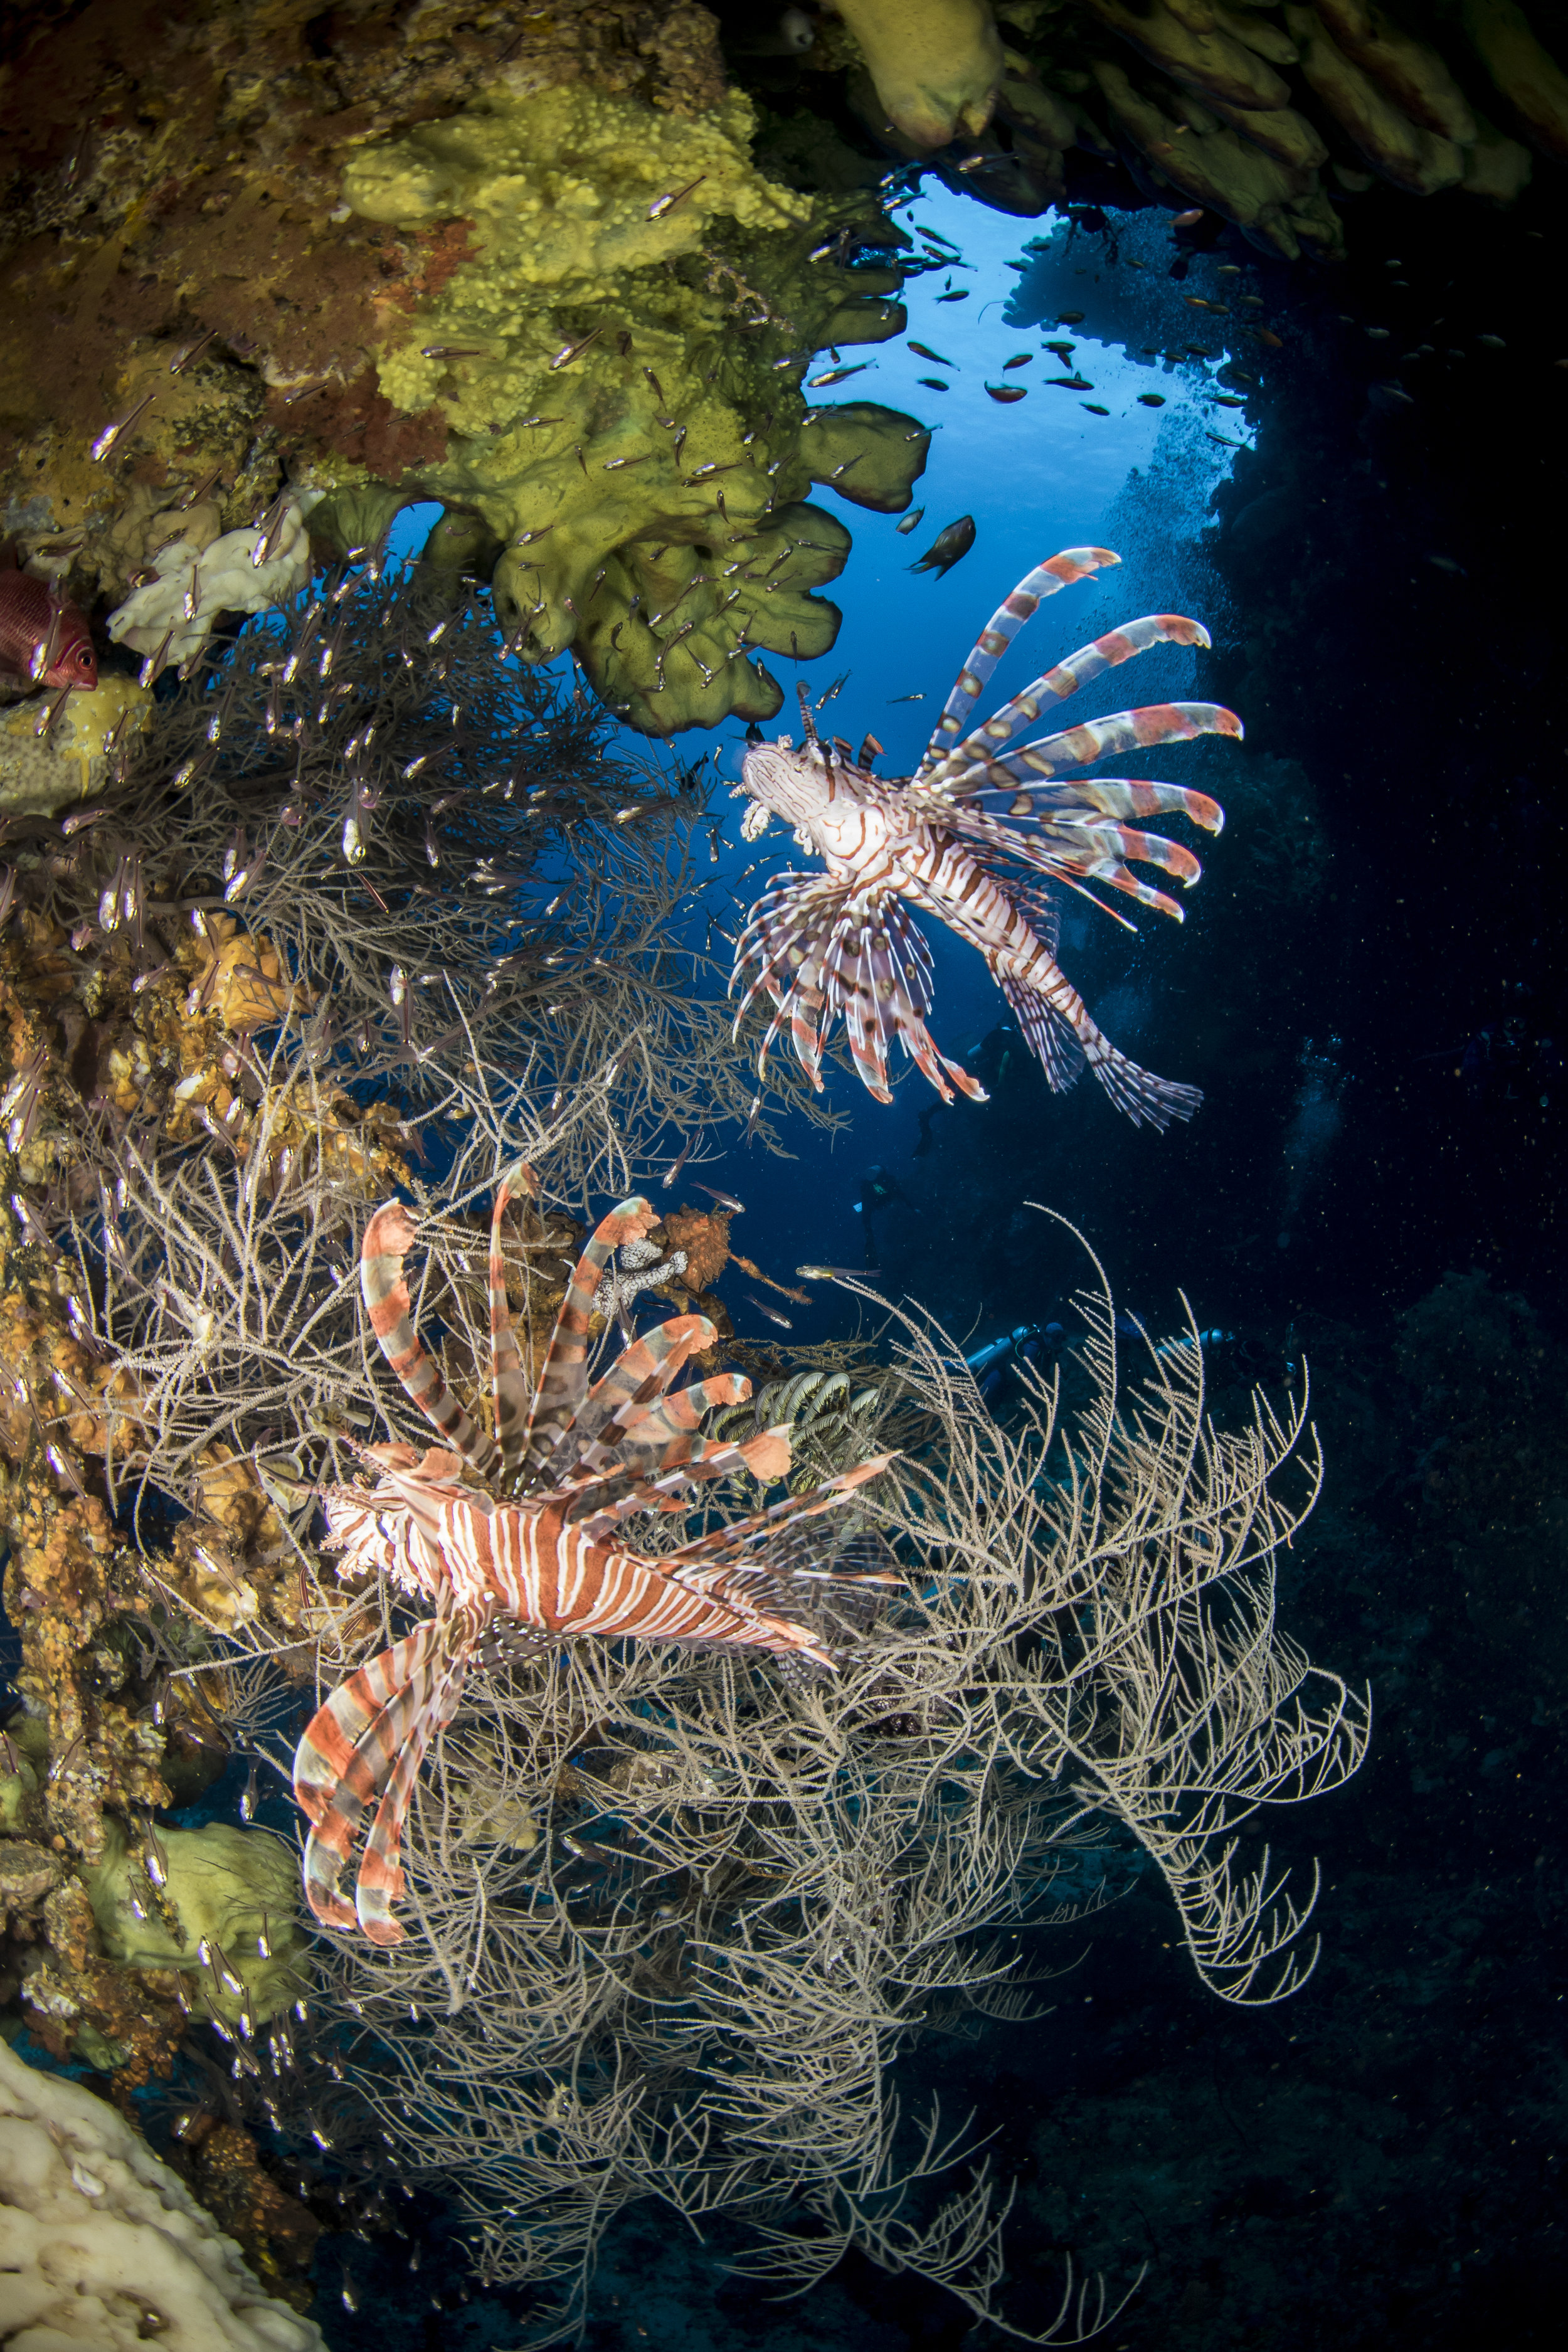 Lionfish in Ambon, Indonesia